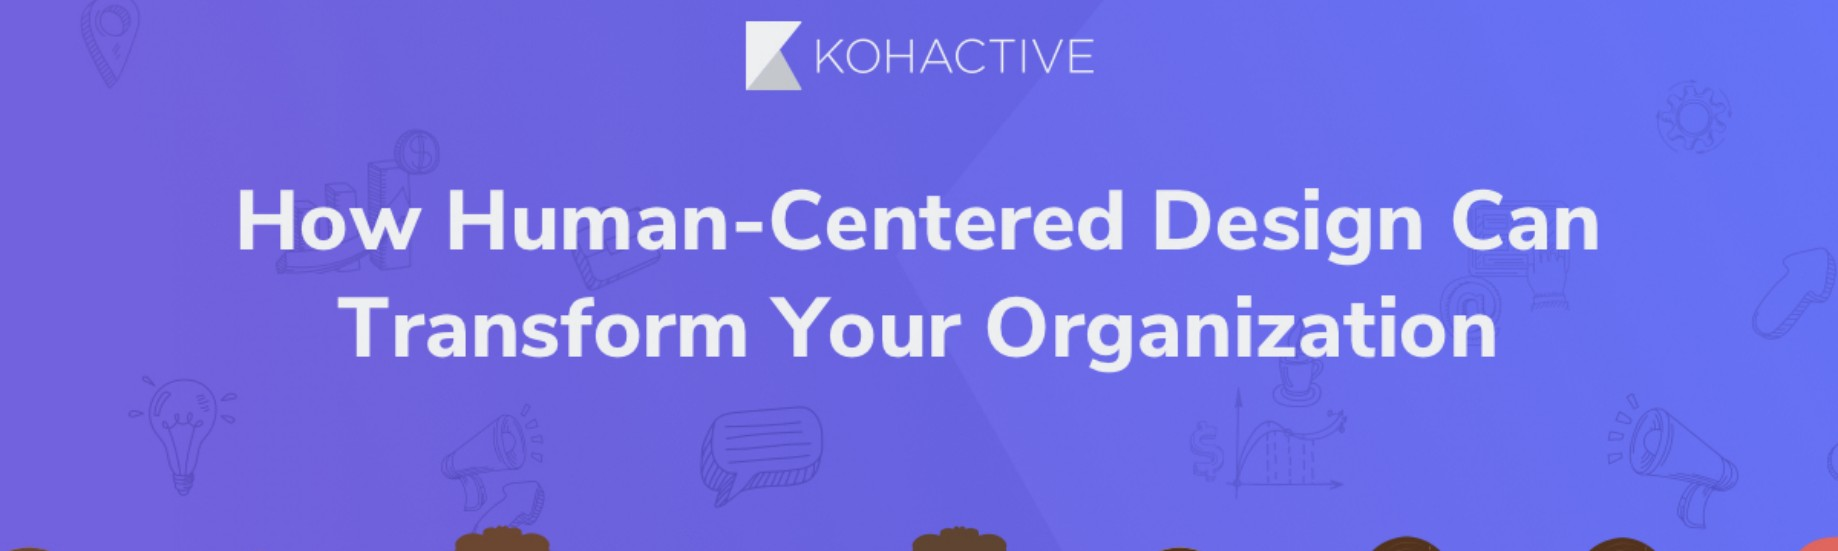 How Human Centered Design Can Transform Your Organization